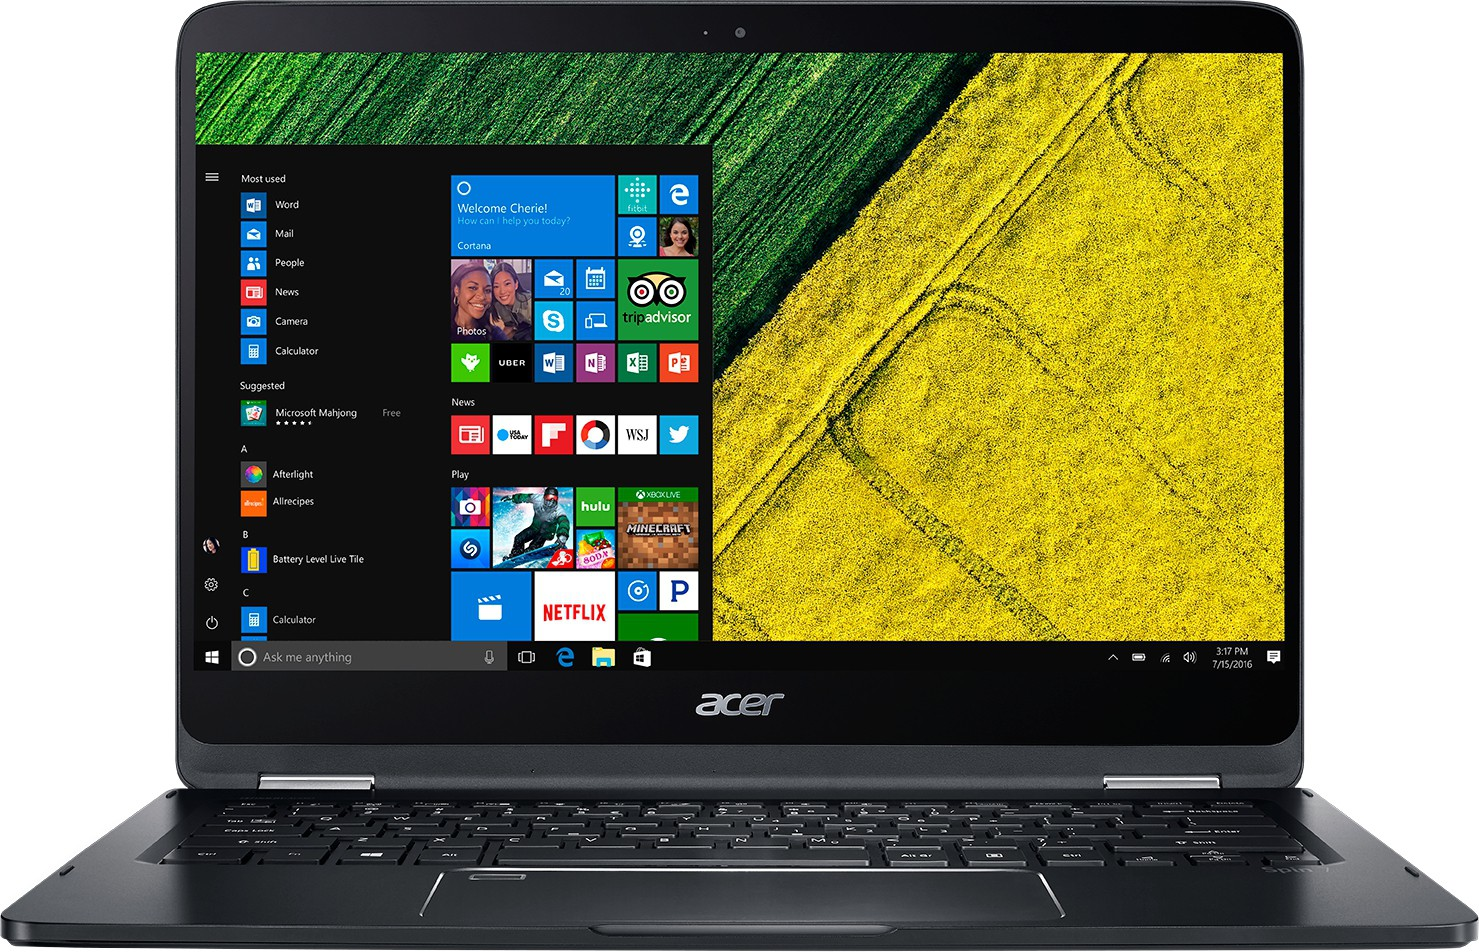 Acer Spin 7 Core i7 7th Gen - (8 GB/256 GB SSD/Windows 10 Home) SP714-51 Notebook(14 inch, Black)   Laptop  (Acer)